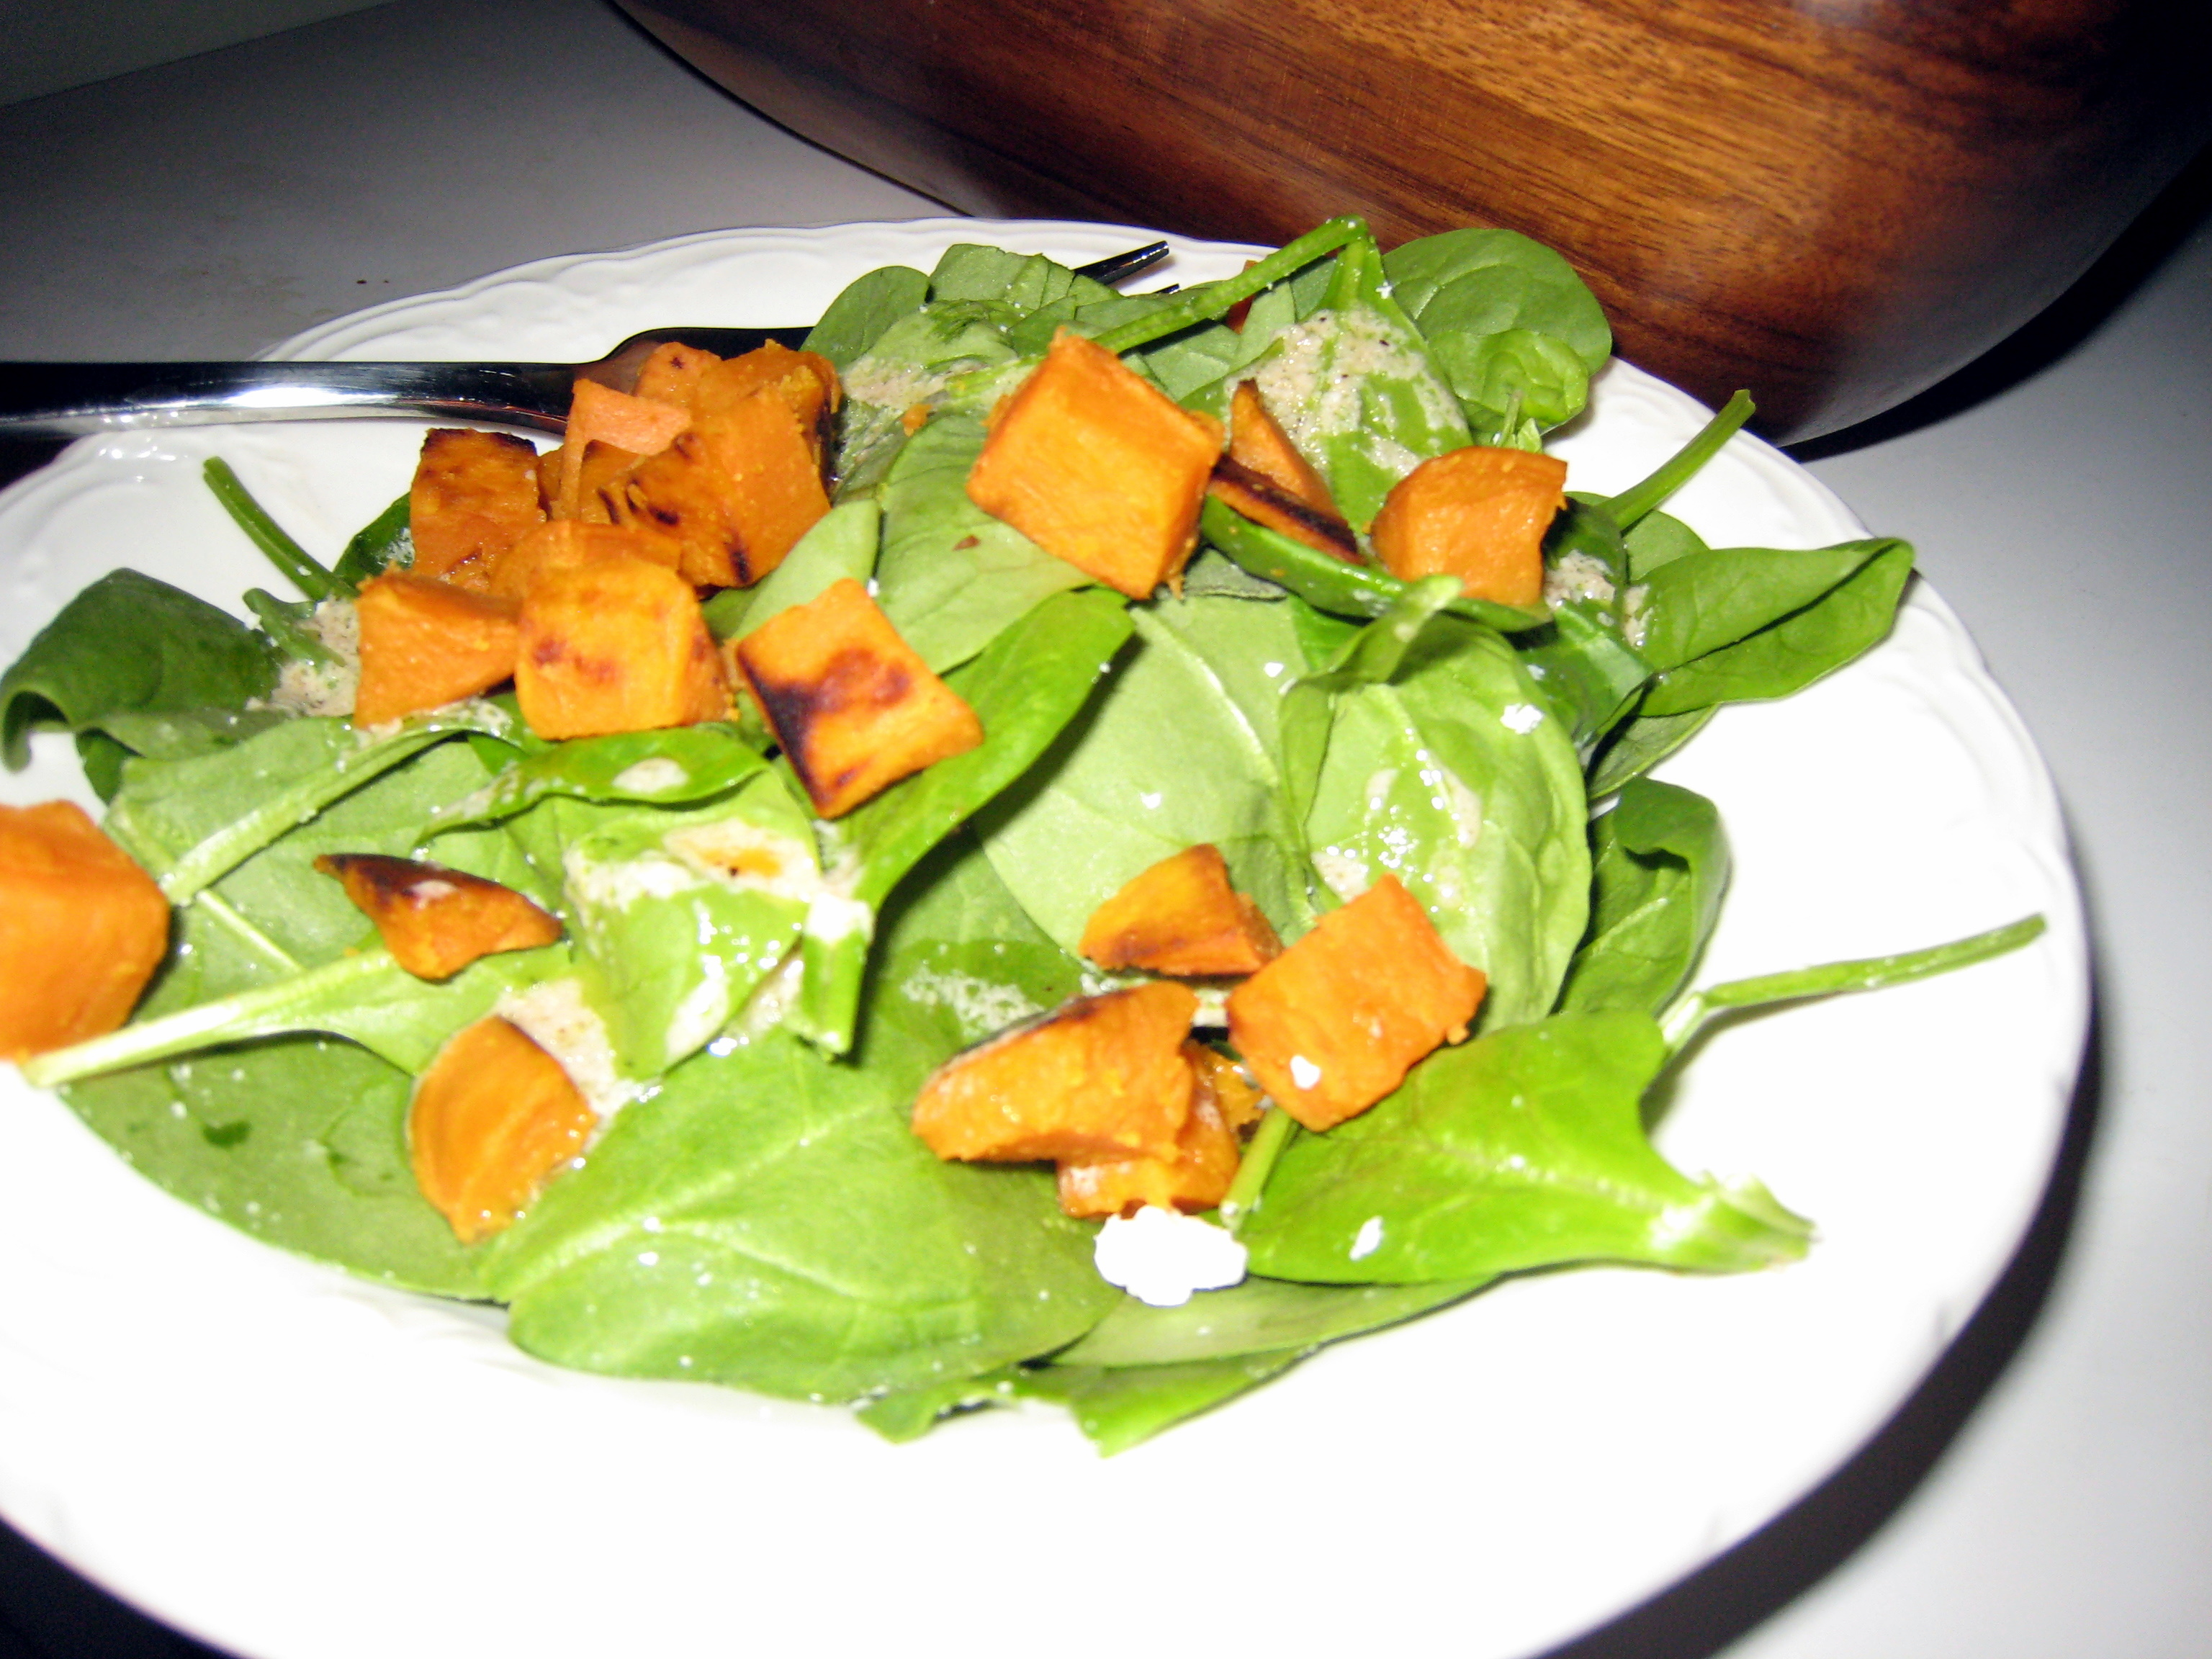 Salad greens with sweet potato croutons and feta December 30, 2008